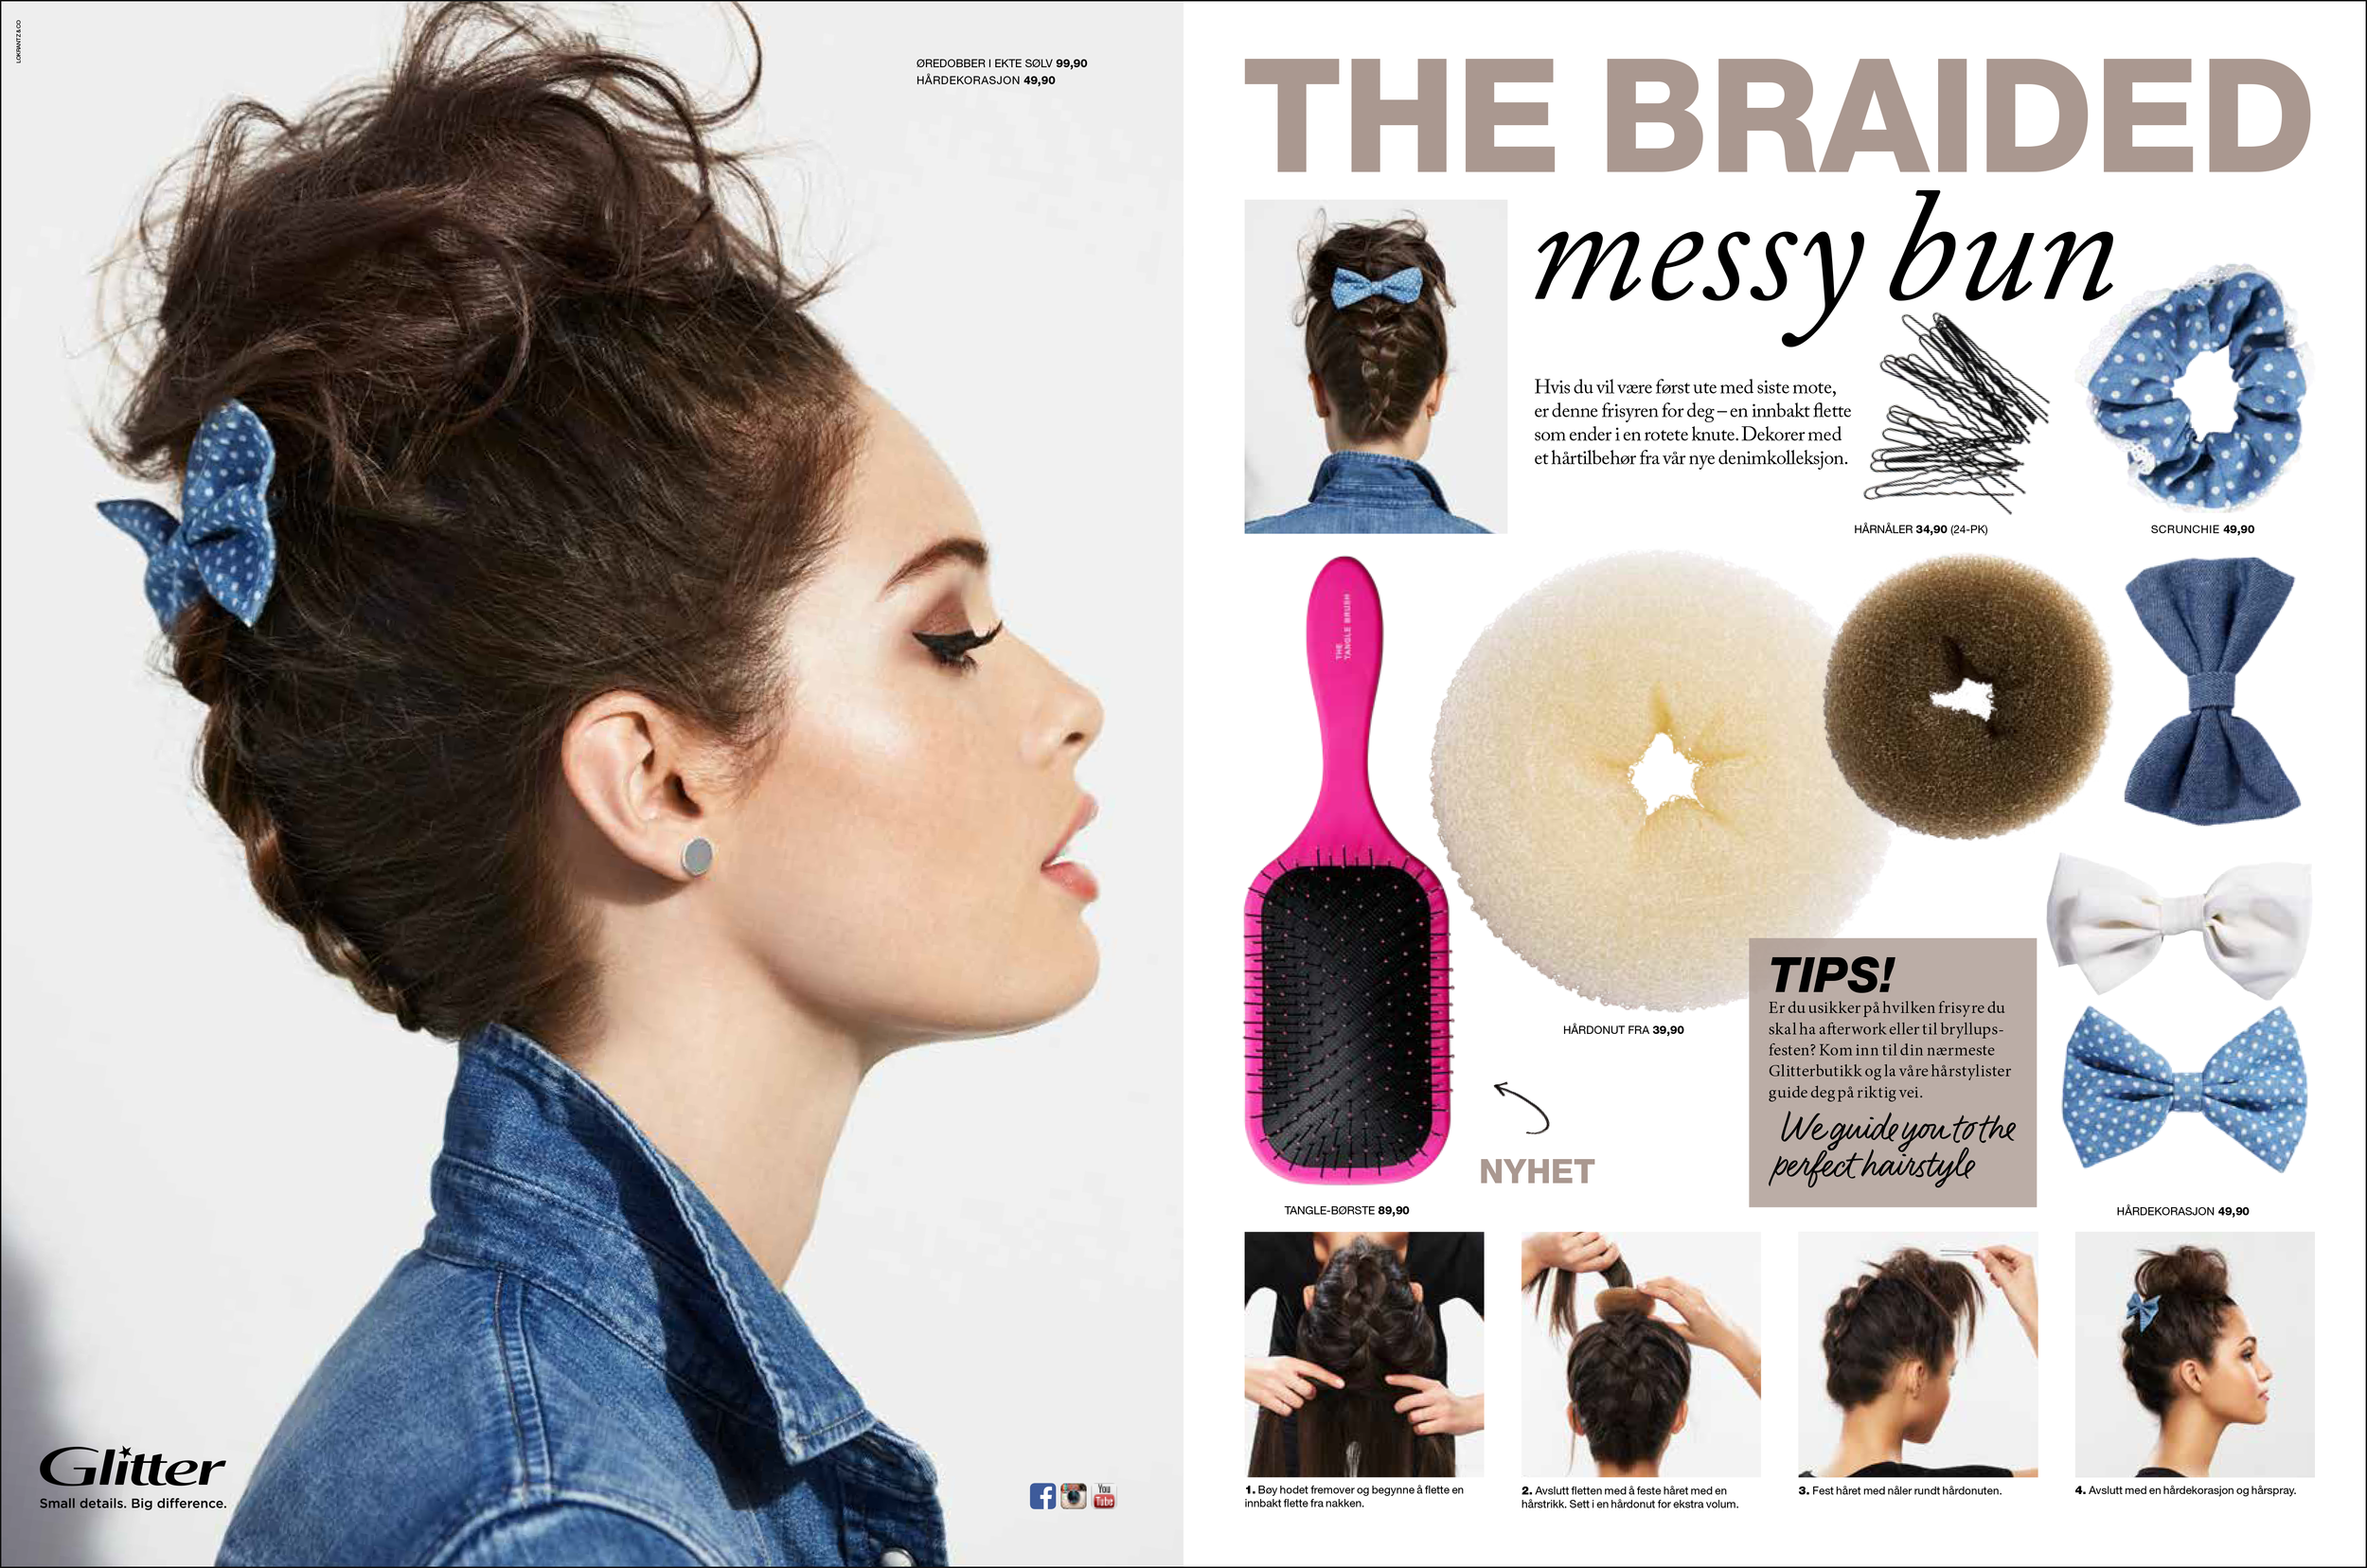 ELLE_7_NO_450x298_The braided.png